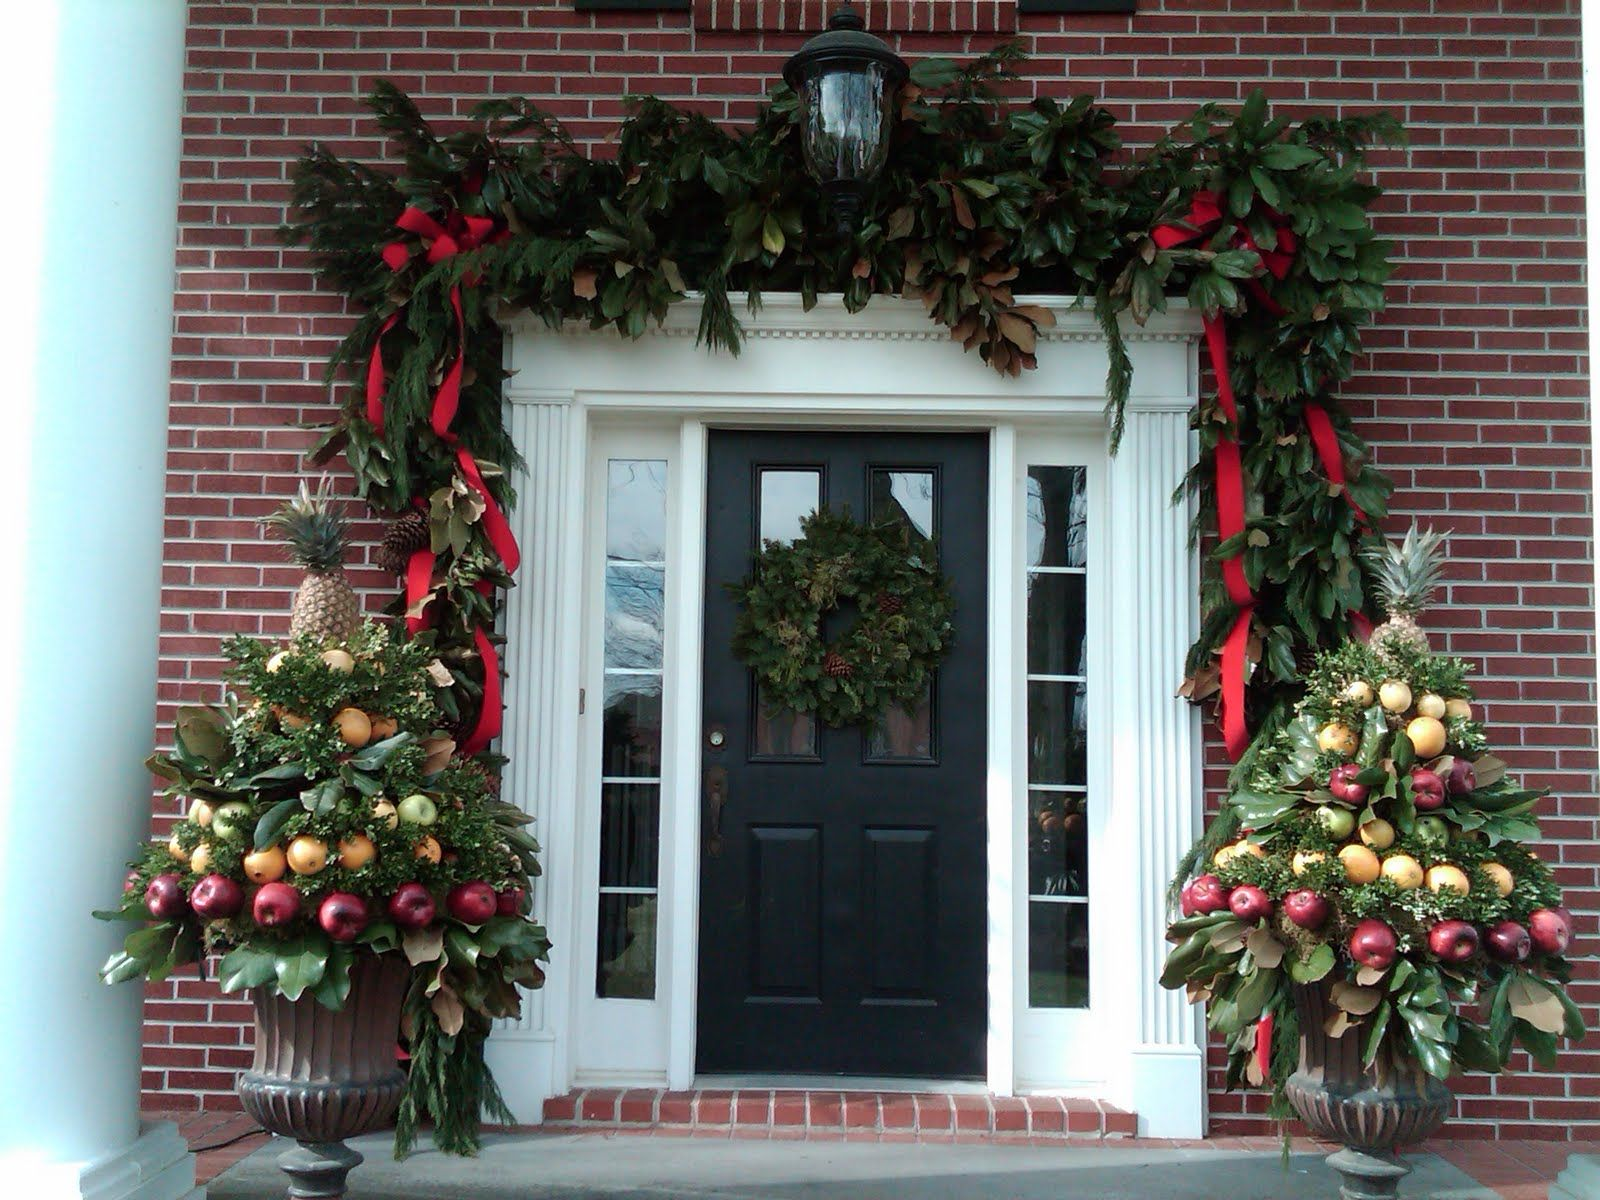 18 most striking diy christmas porch decorations that will melt your heart - Diy Christmas Front Door Decorations